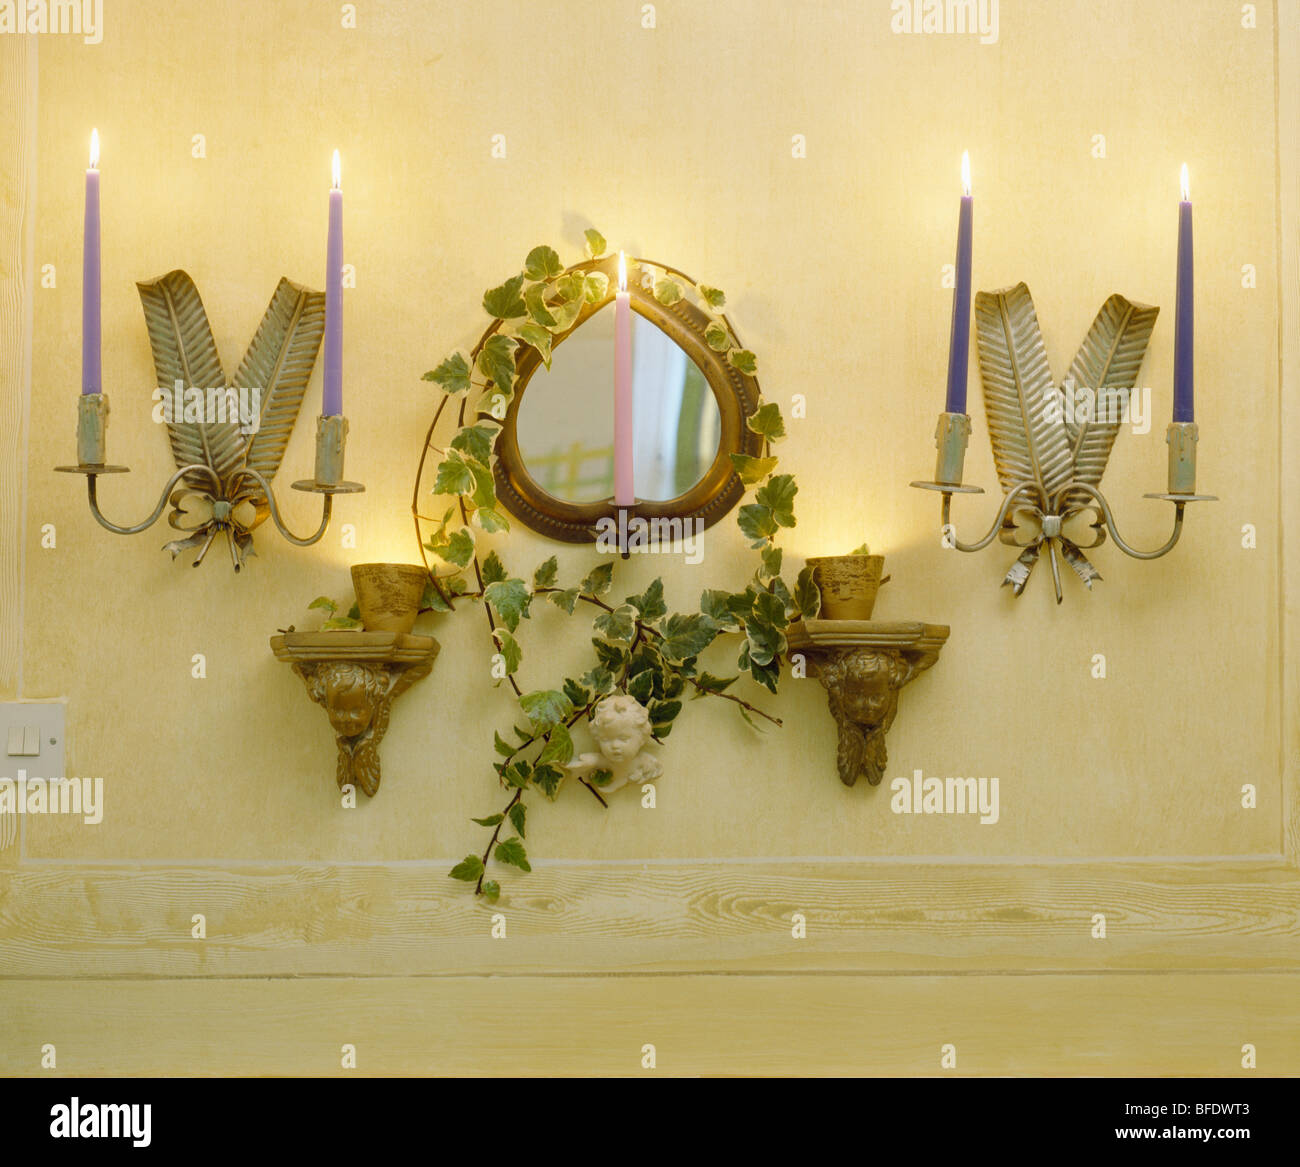 Wall Sconces Stock Photos & Wall Sconces Stock Images - Alamy